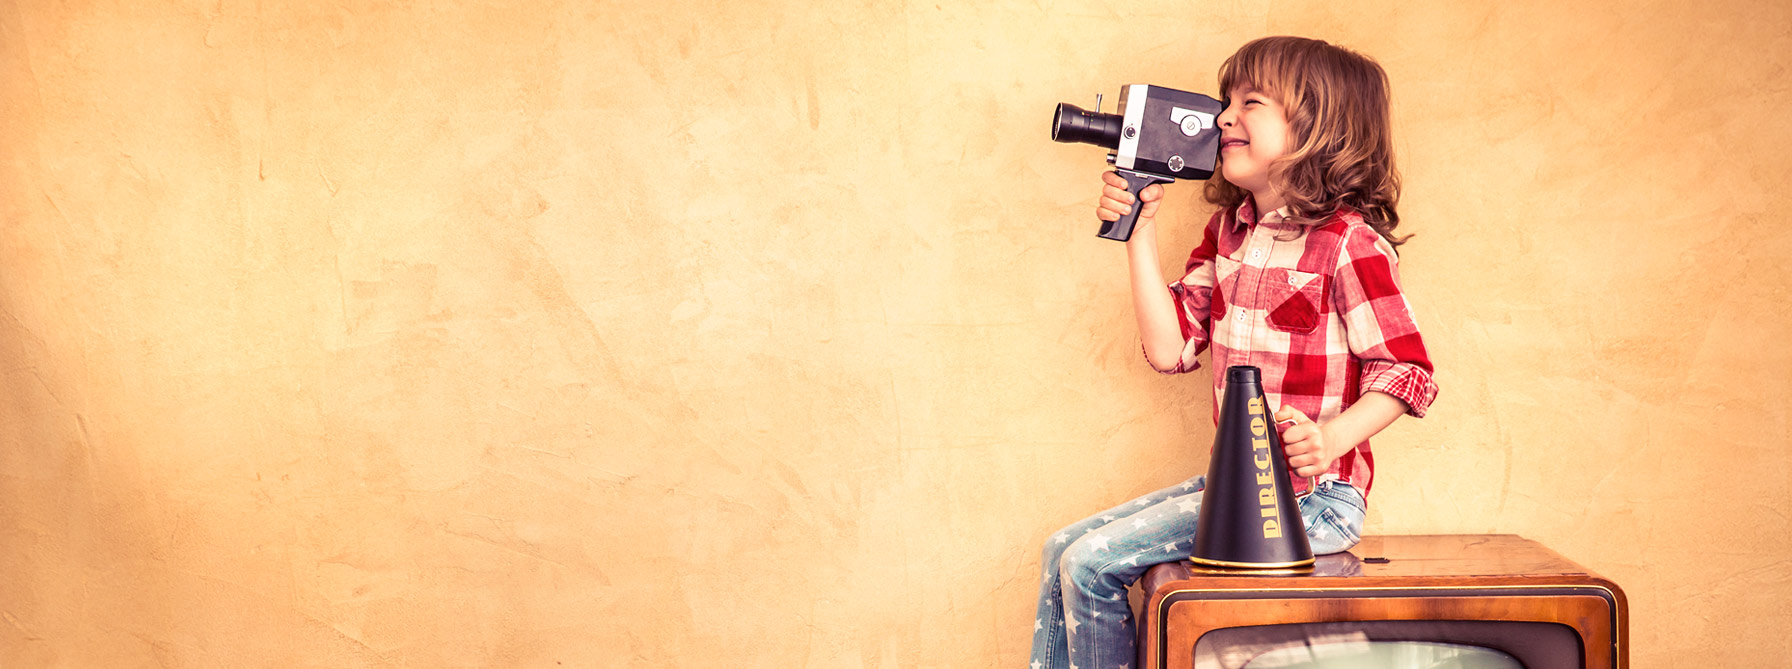 5 Steps to Successful Video Marketing header